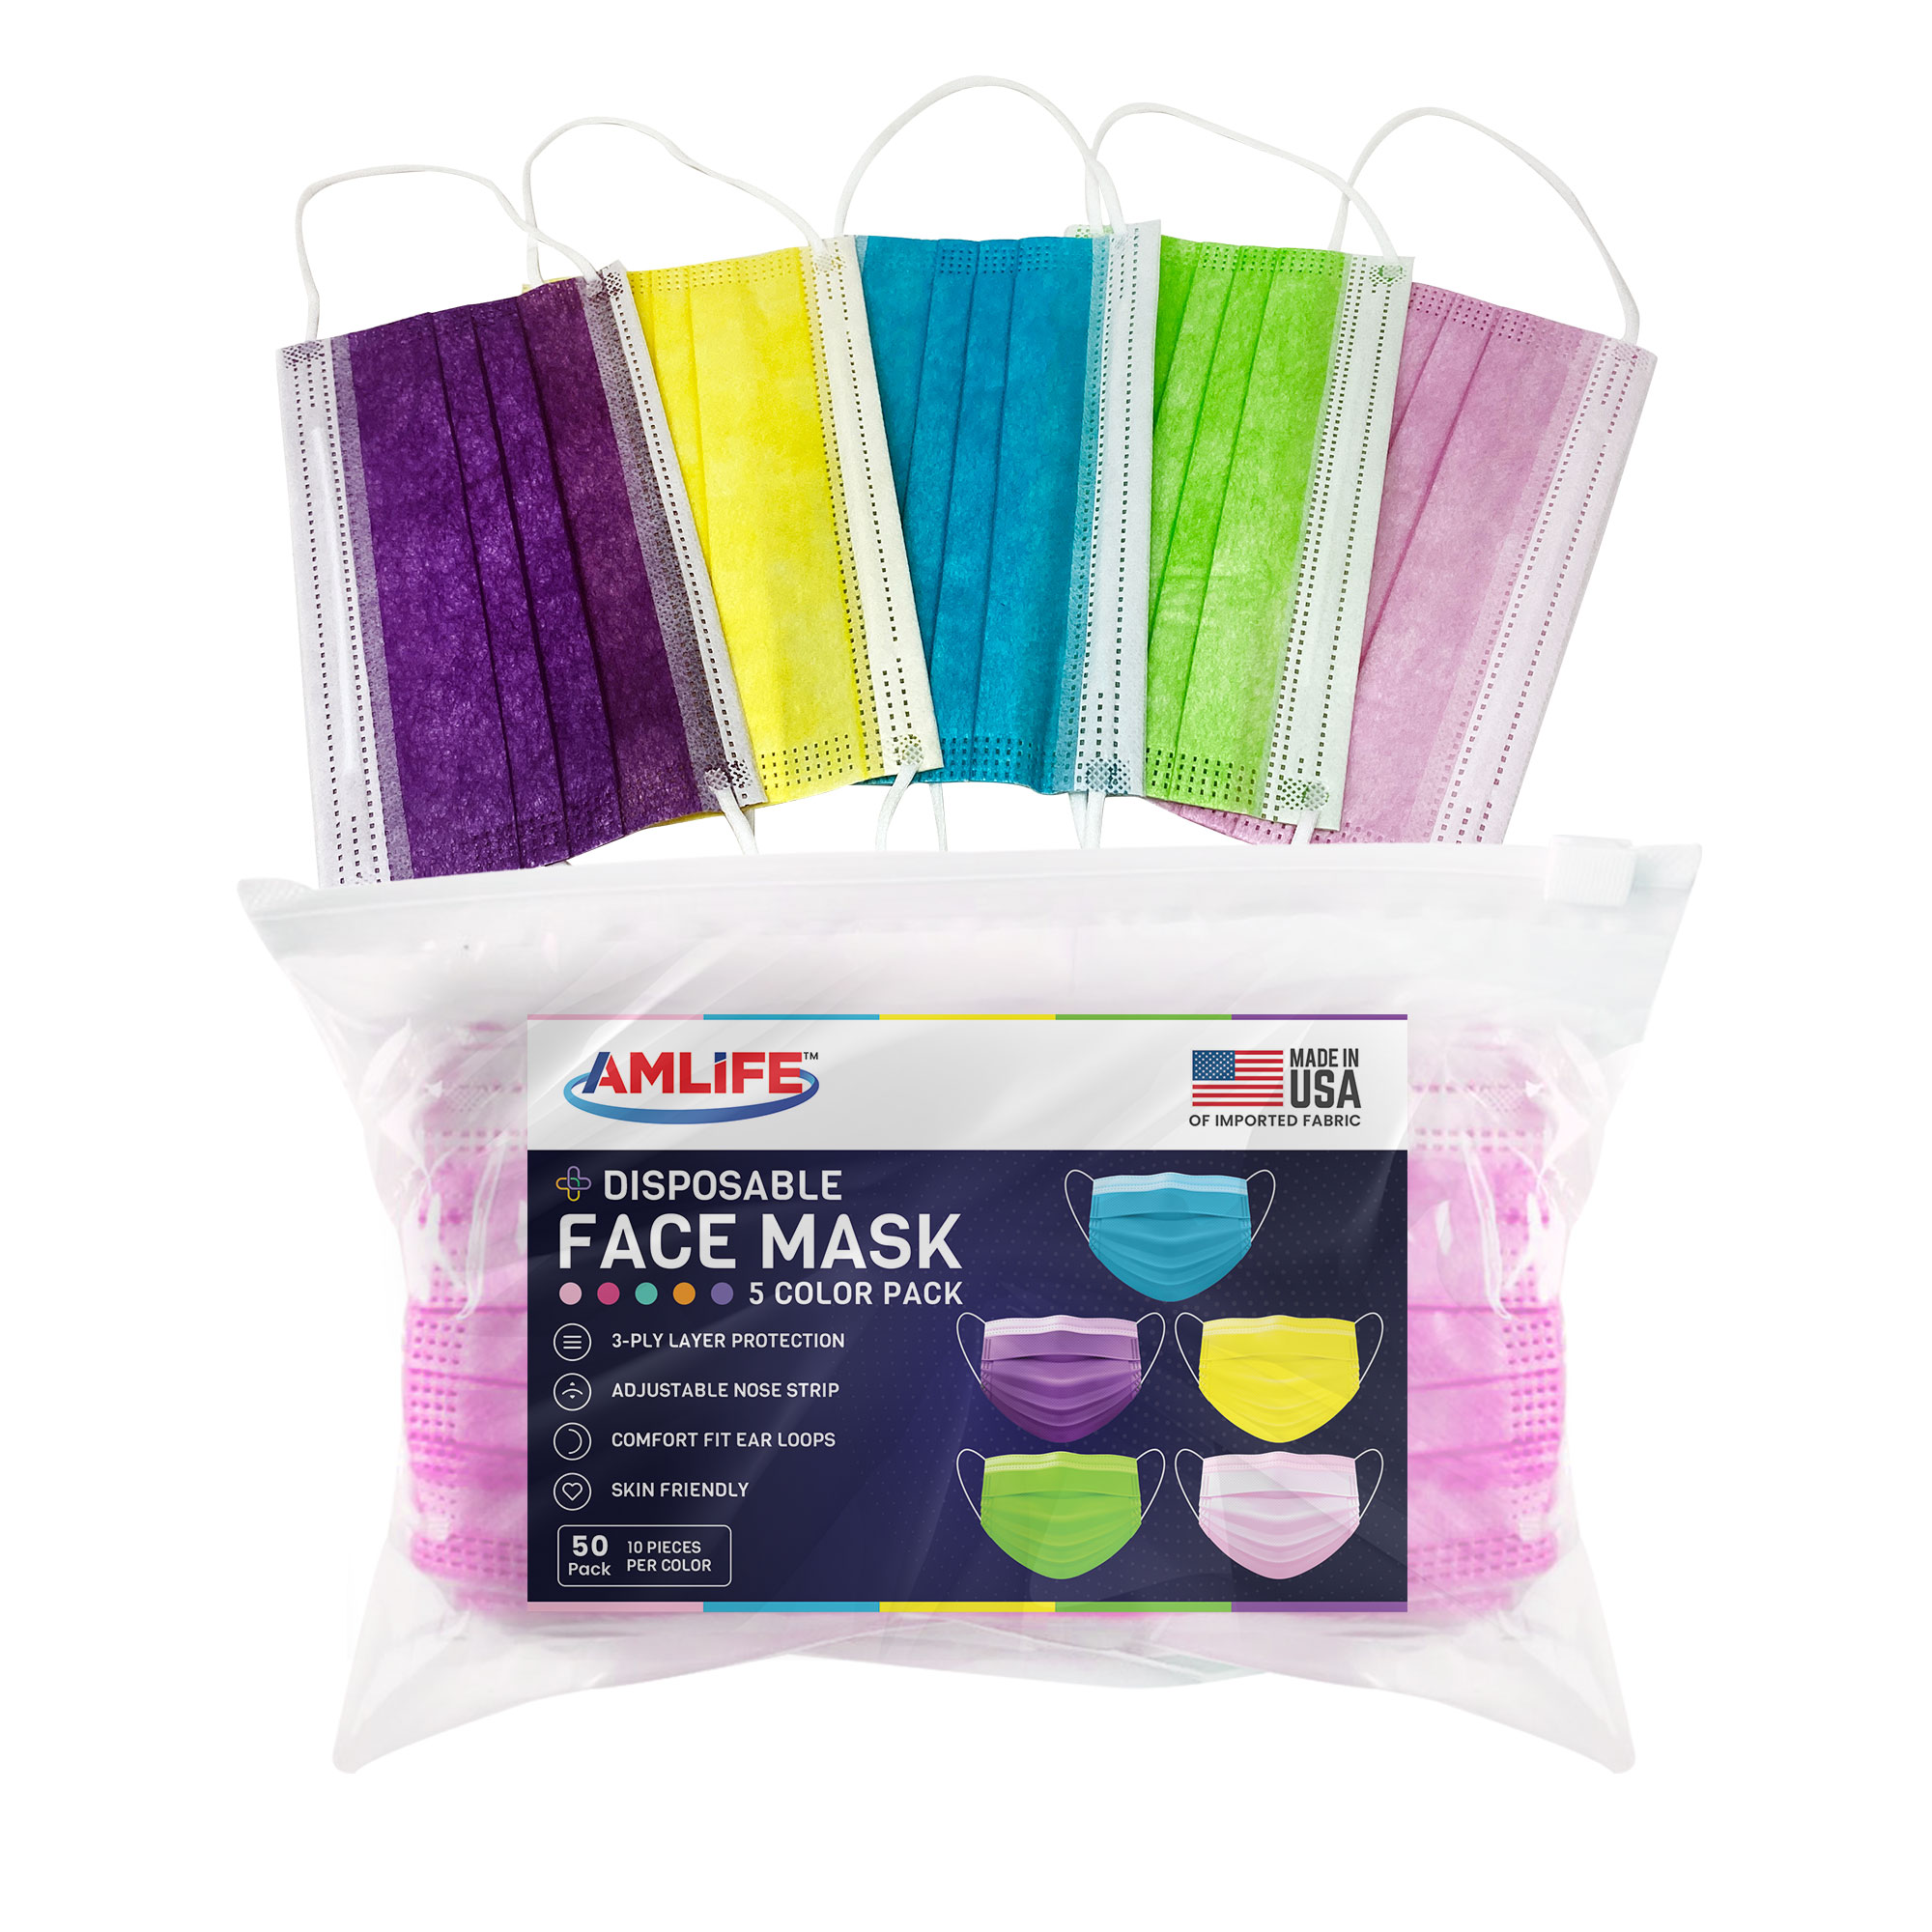 Campus Wardrobe Introduces New Face Masks for Back to School